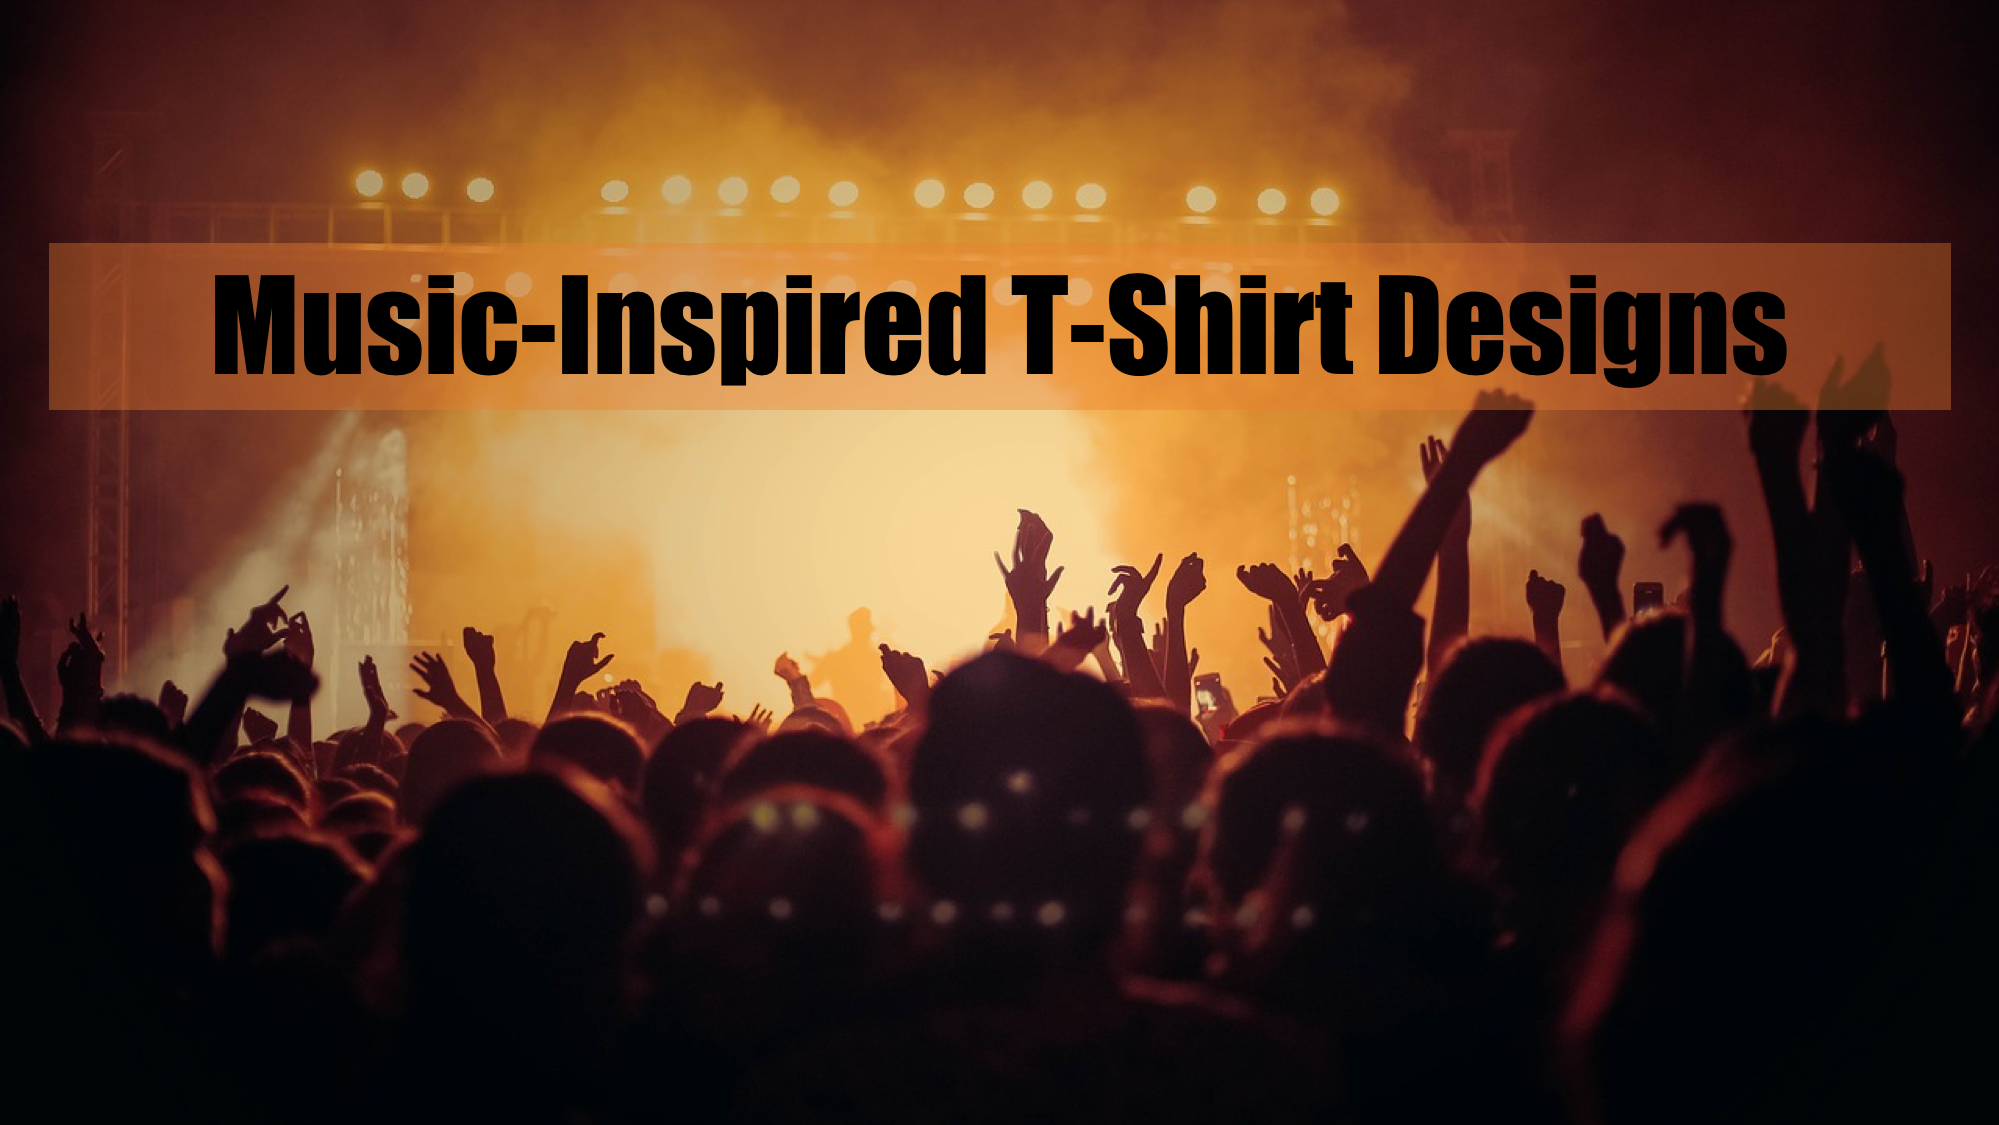 Music-Inspired T-Shirts Concert Image